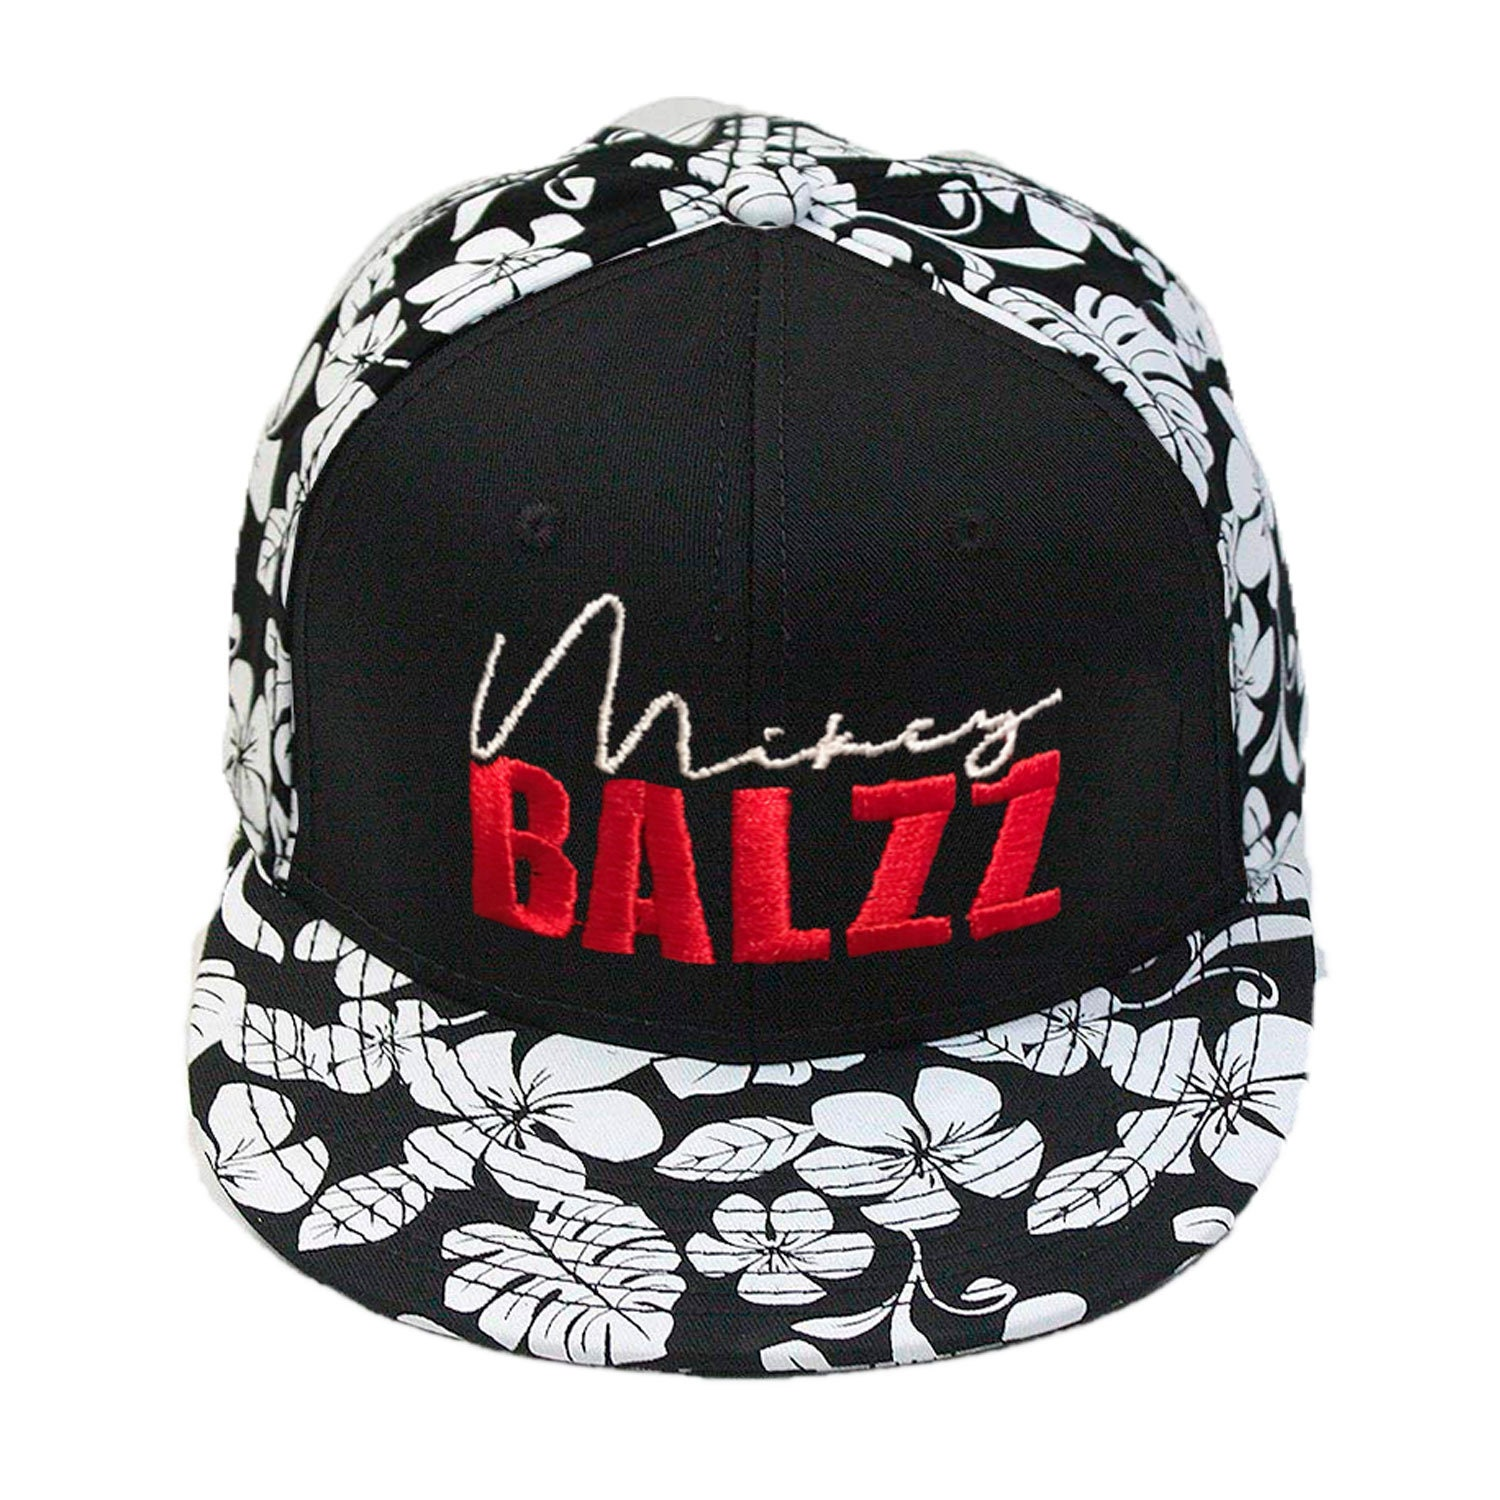 Signature Mikey Balzz - Embroidered Snap-back Hat - Decky Brand, Hawaiian Floral Baseball Cap.  Mikey Balzz Fishing Shirts, Hats, and Caps available at Bass Attitude Fishing. Embroidered on a floral hawaiian hat.